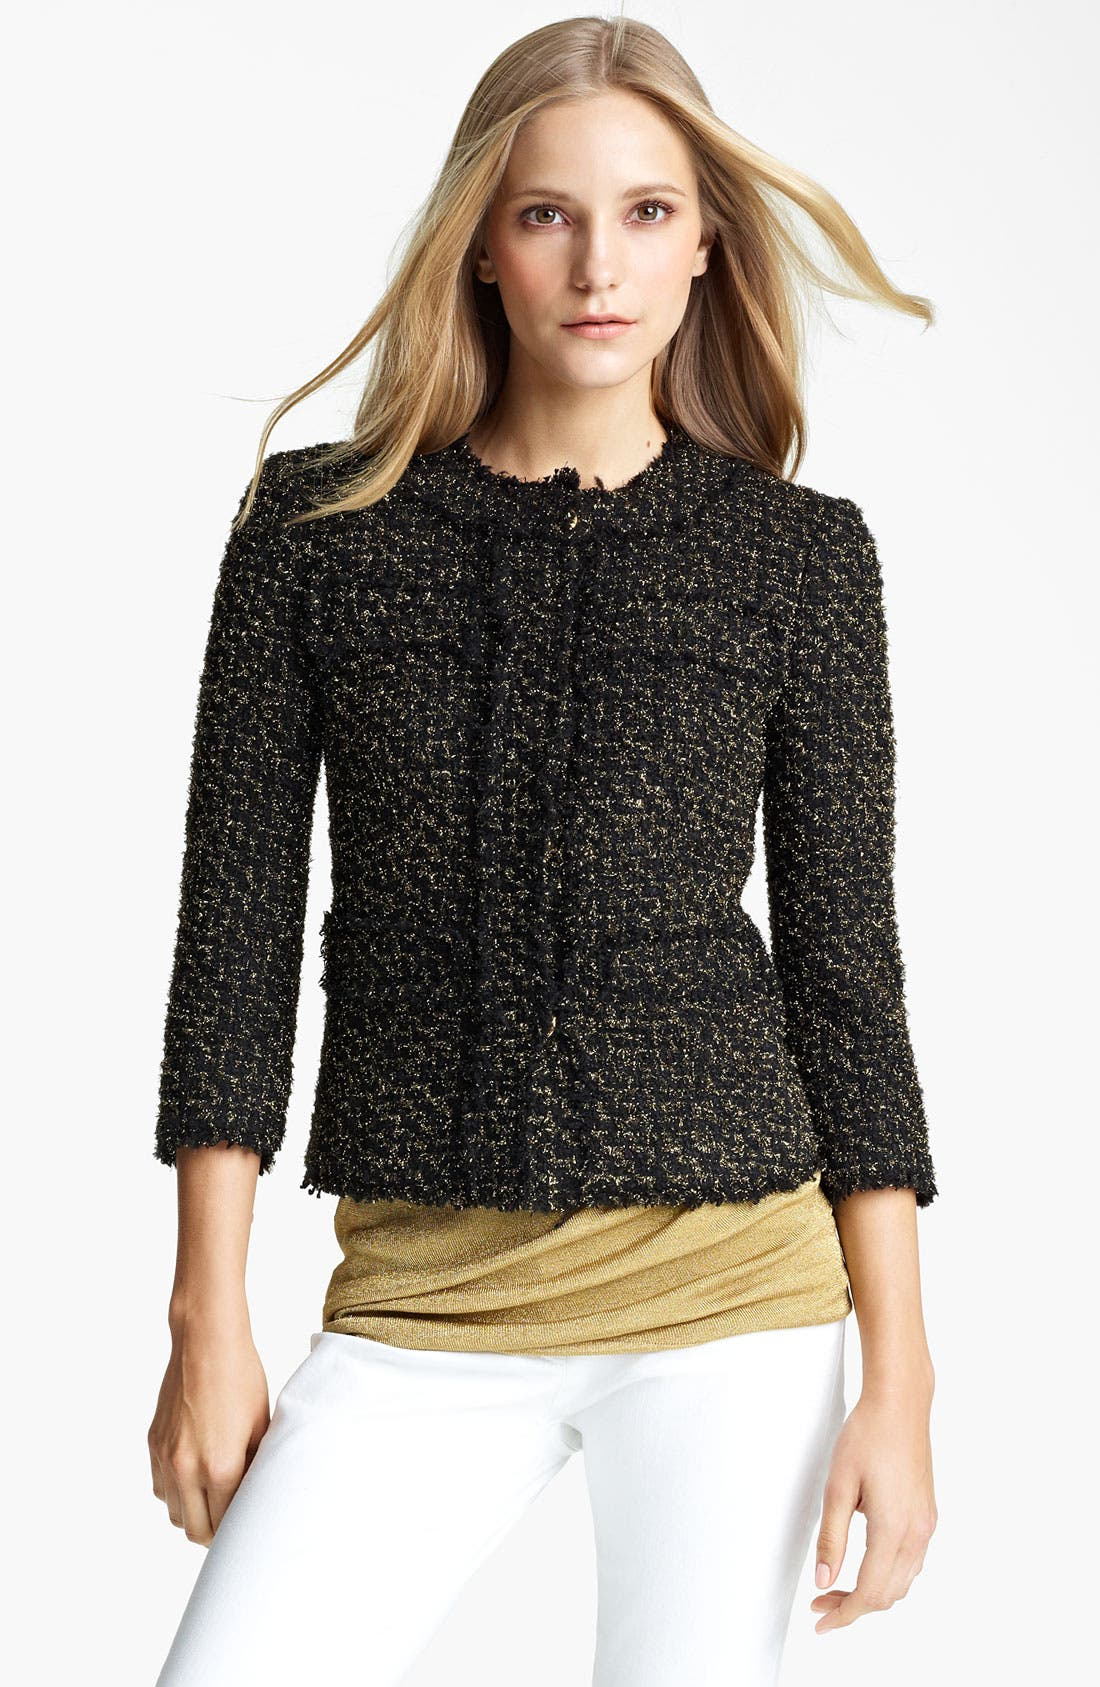 Main Image - Michael Kors Metallic Tweed Jacket